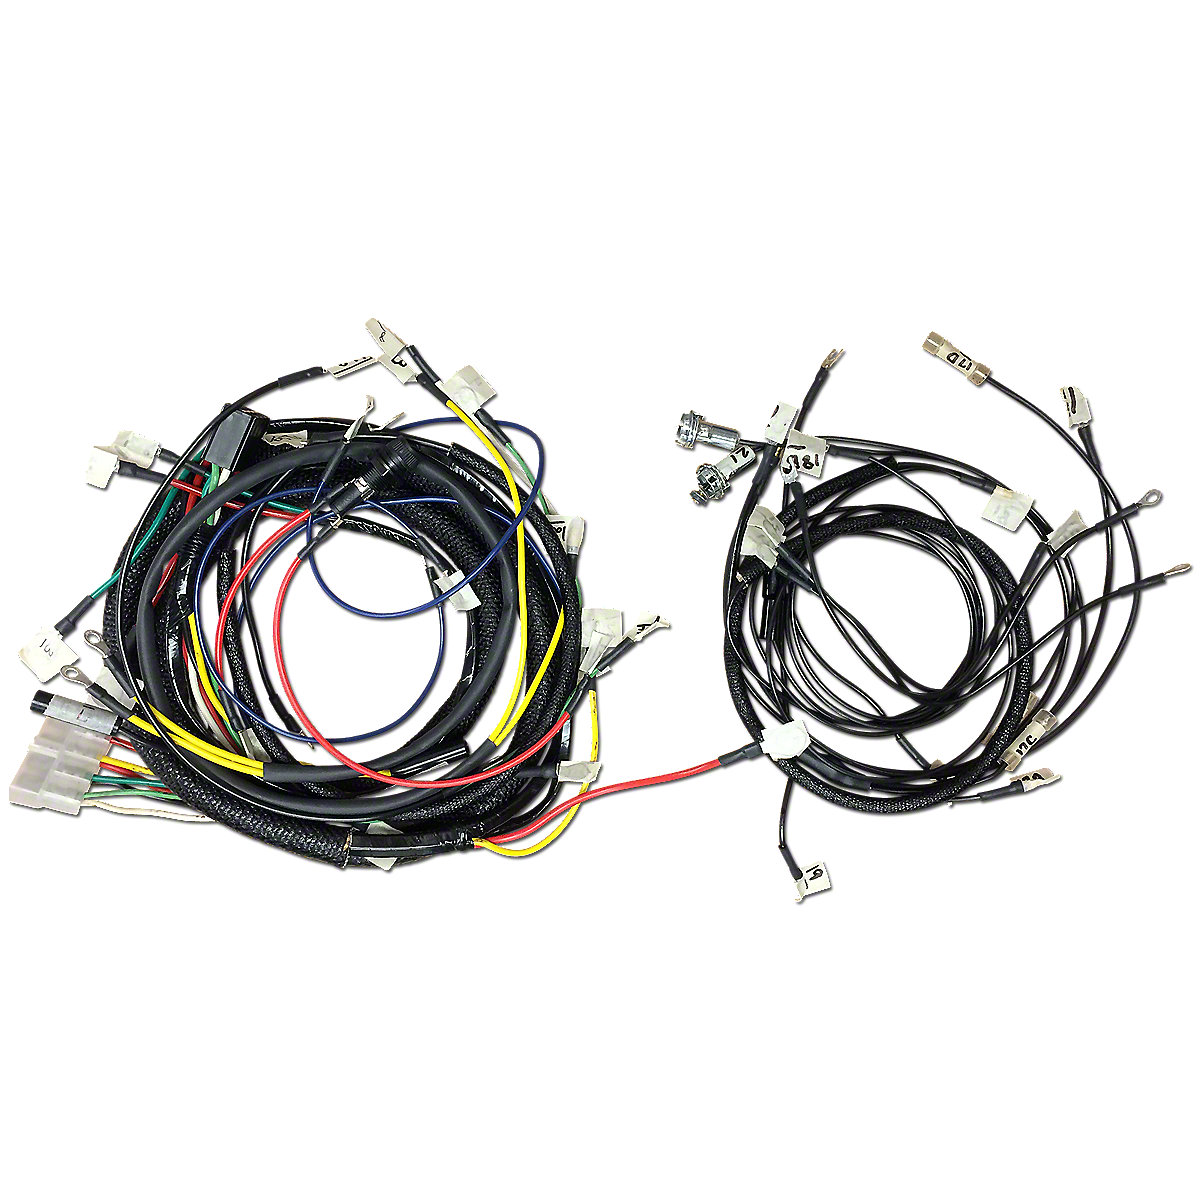 Wiring Diagram For Case 930 Harness 2016 Uca40413 Replaces A35304 G44066